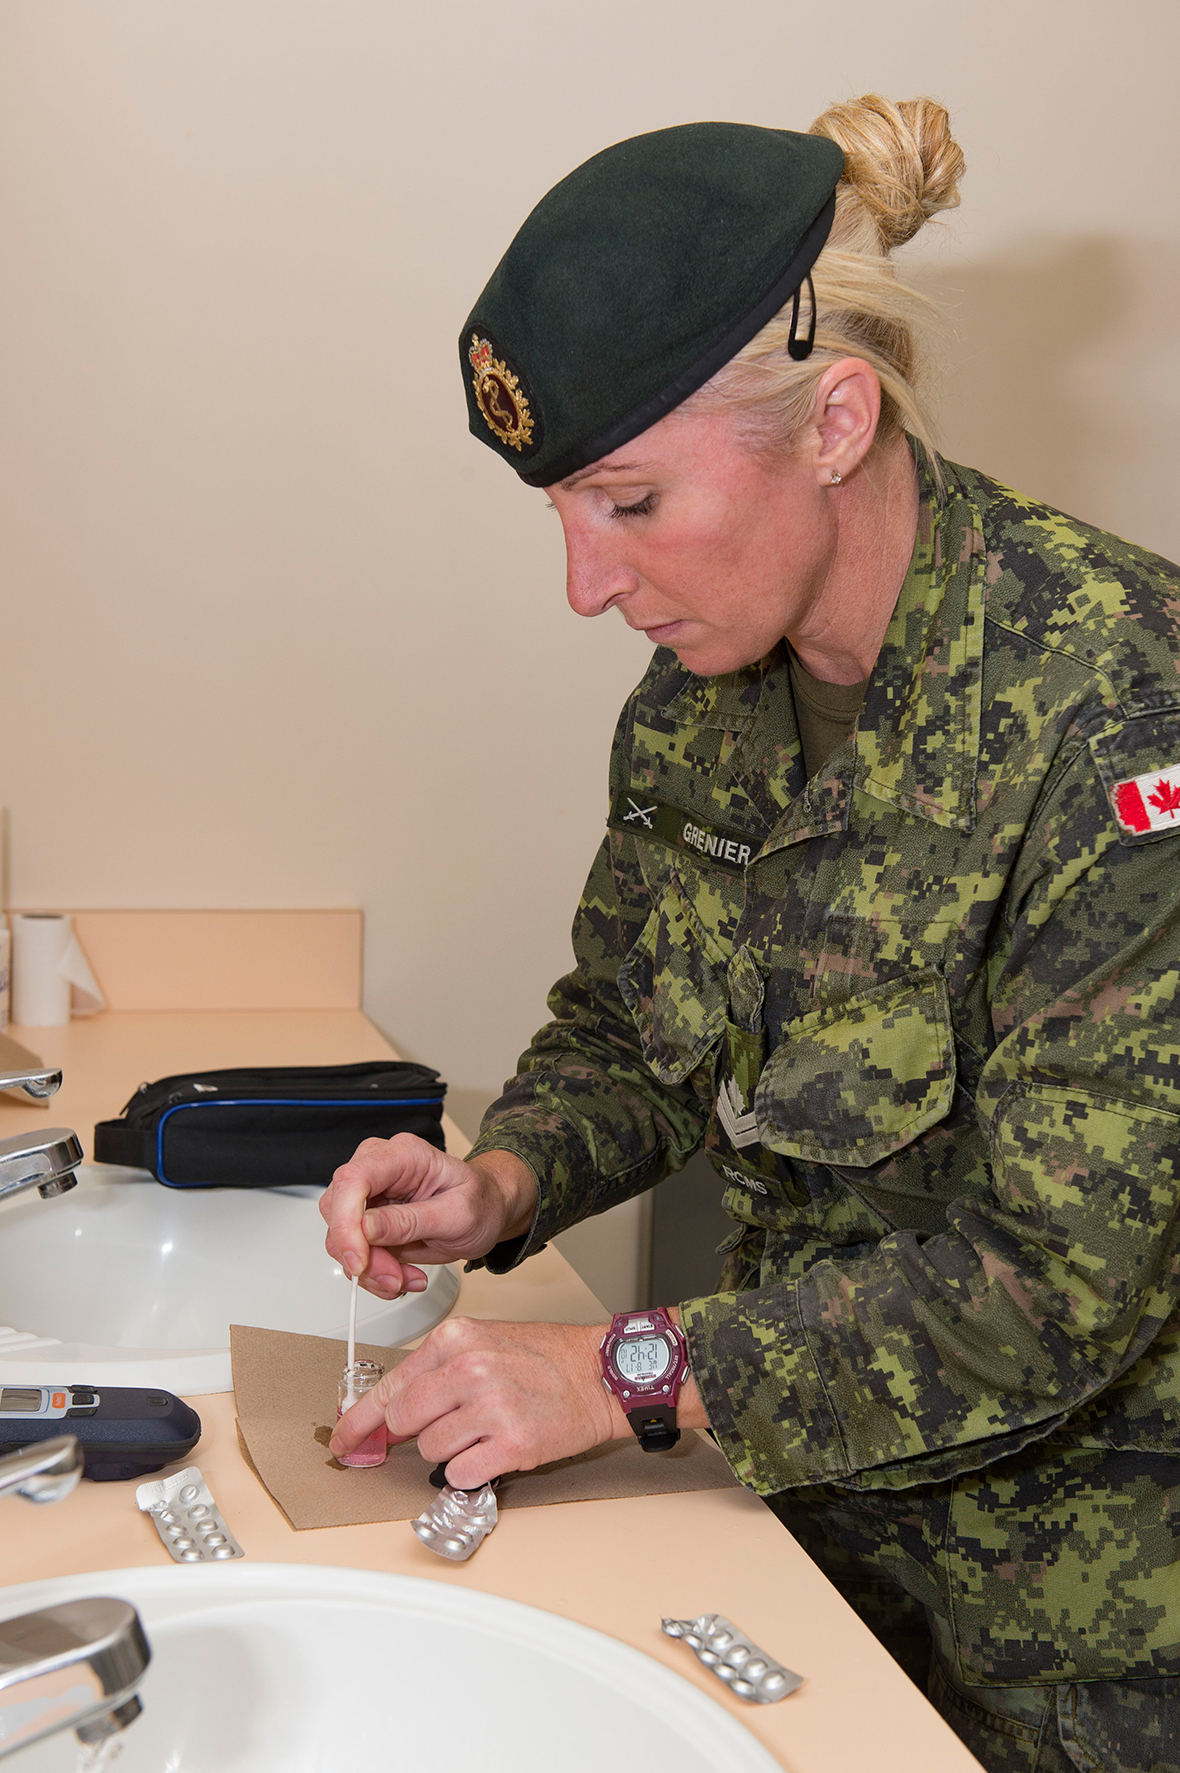 Master Corporal Dominique Grenier, Preventative Medicine technician tests water for pH, chlorine and coliform levels during Operation NANOOK in the Yukon Territory on August 17, 2016. (Photo: Corporal Chase Miller, Canadian Forces Support Unit (Ottawa) - Imaging Services